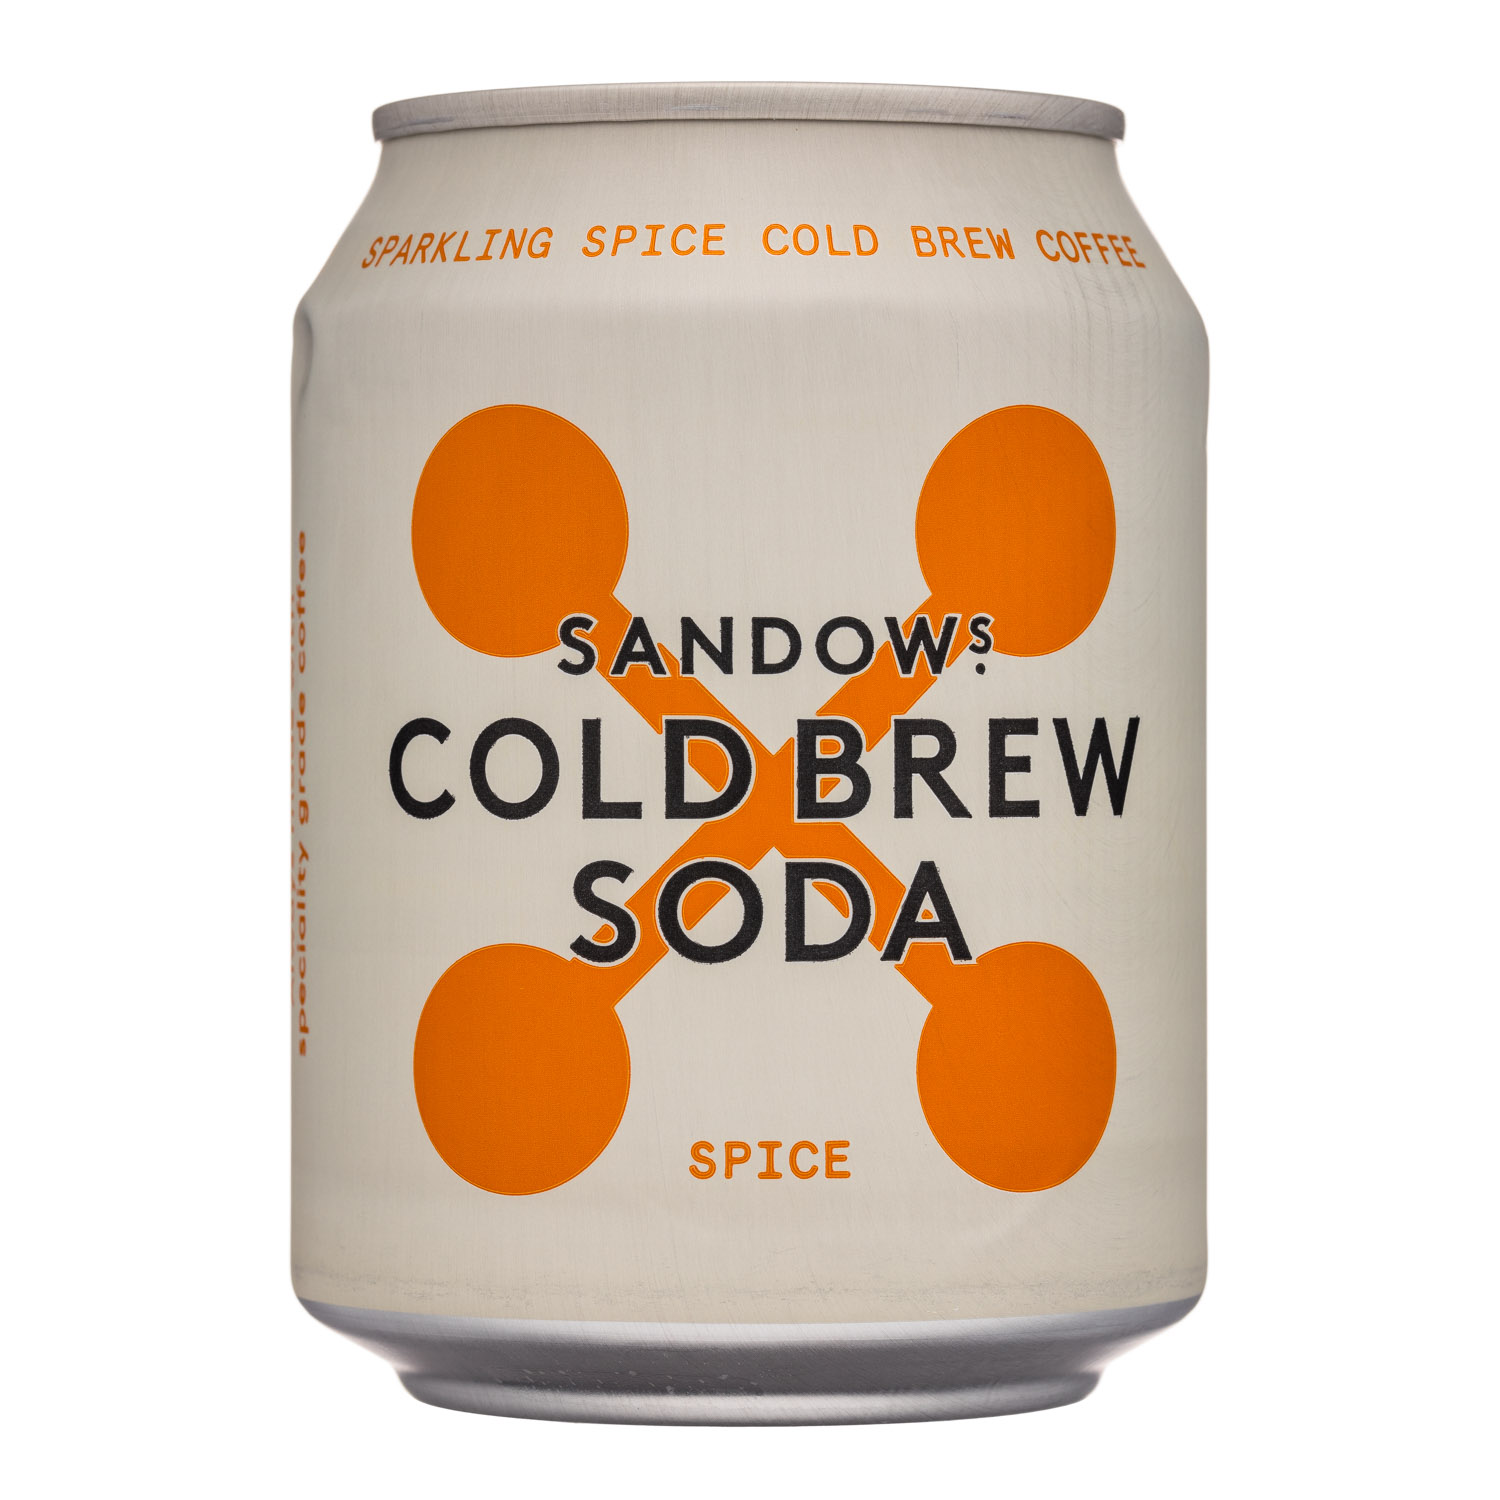 Cold Brew Soda: Spice